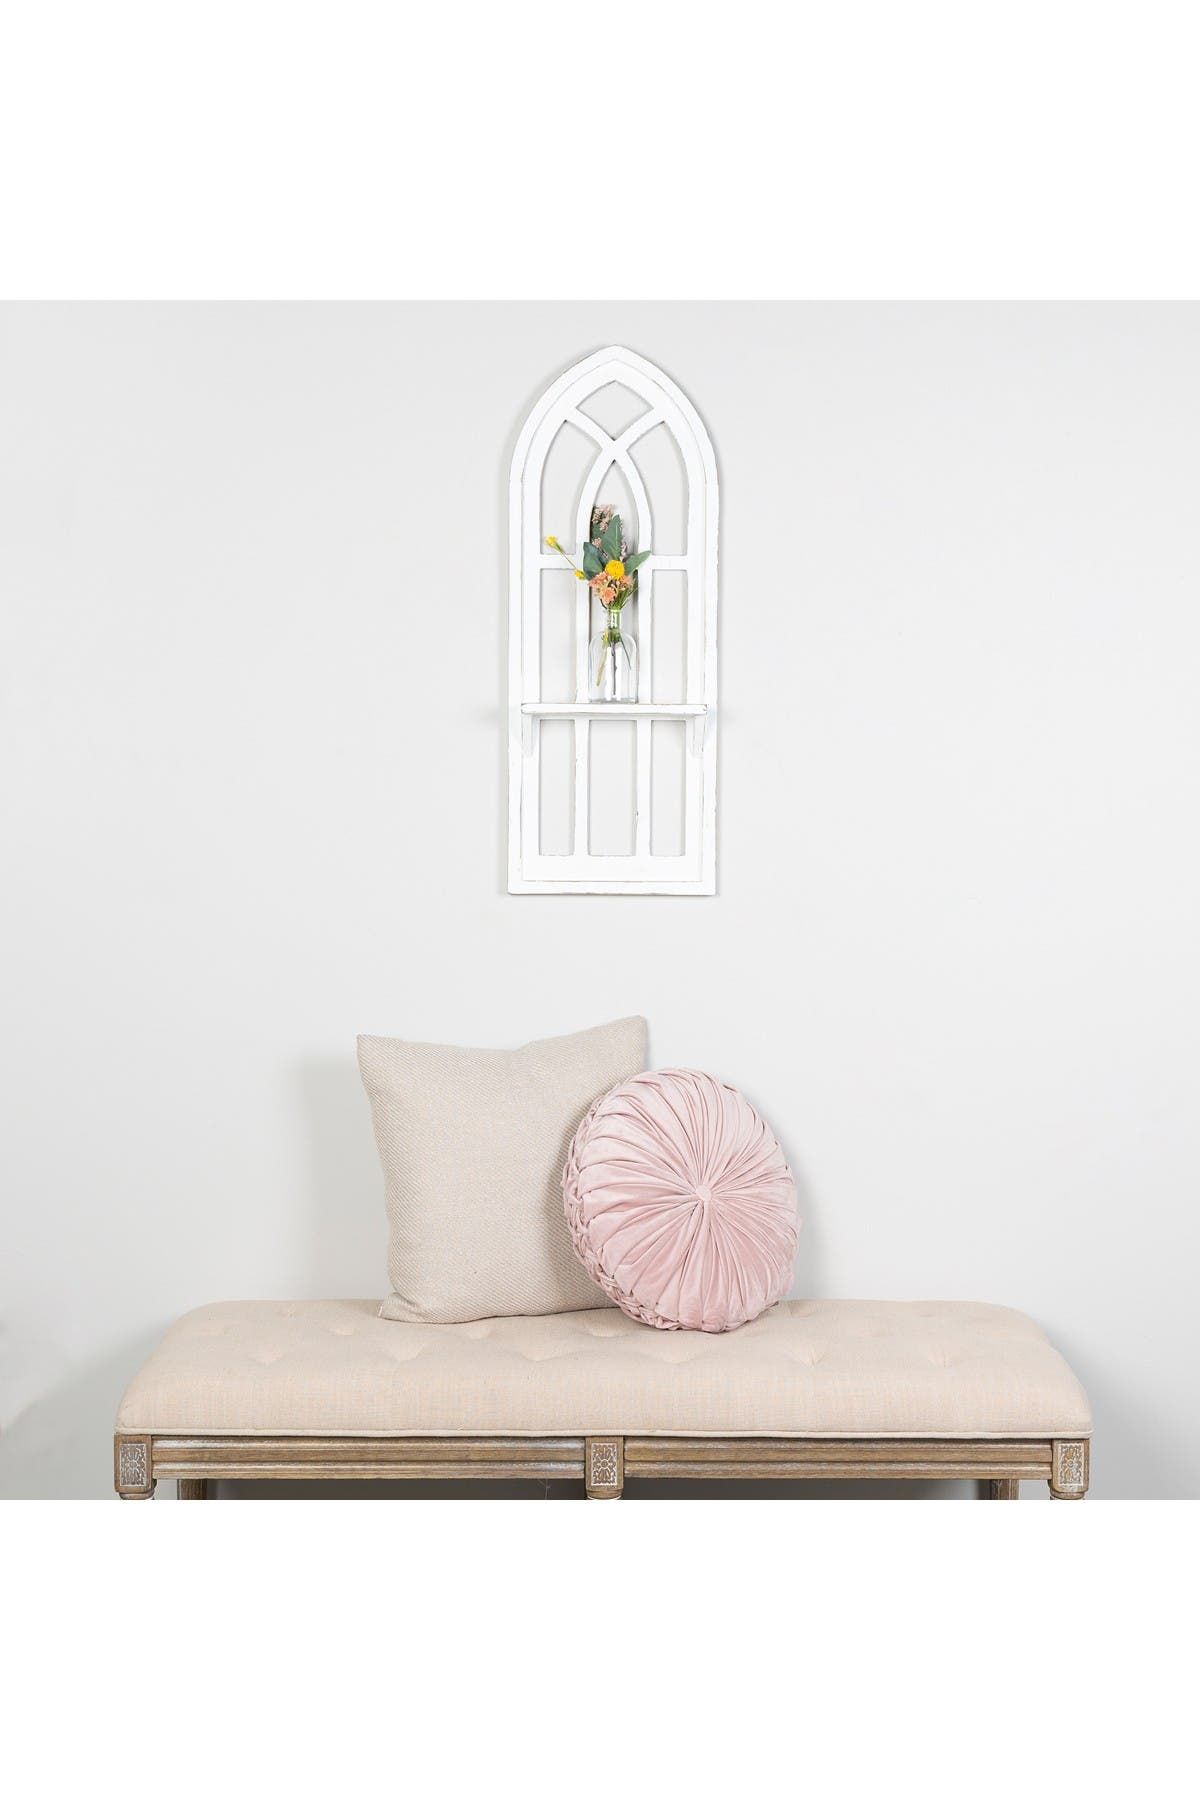 Image of Stratton Home Distressed Window Arch with Shelf Wall Decor